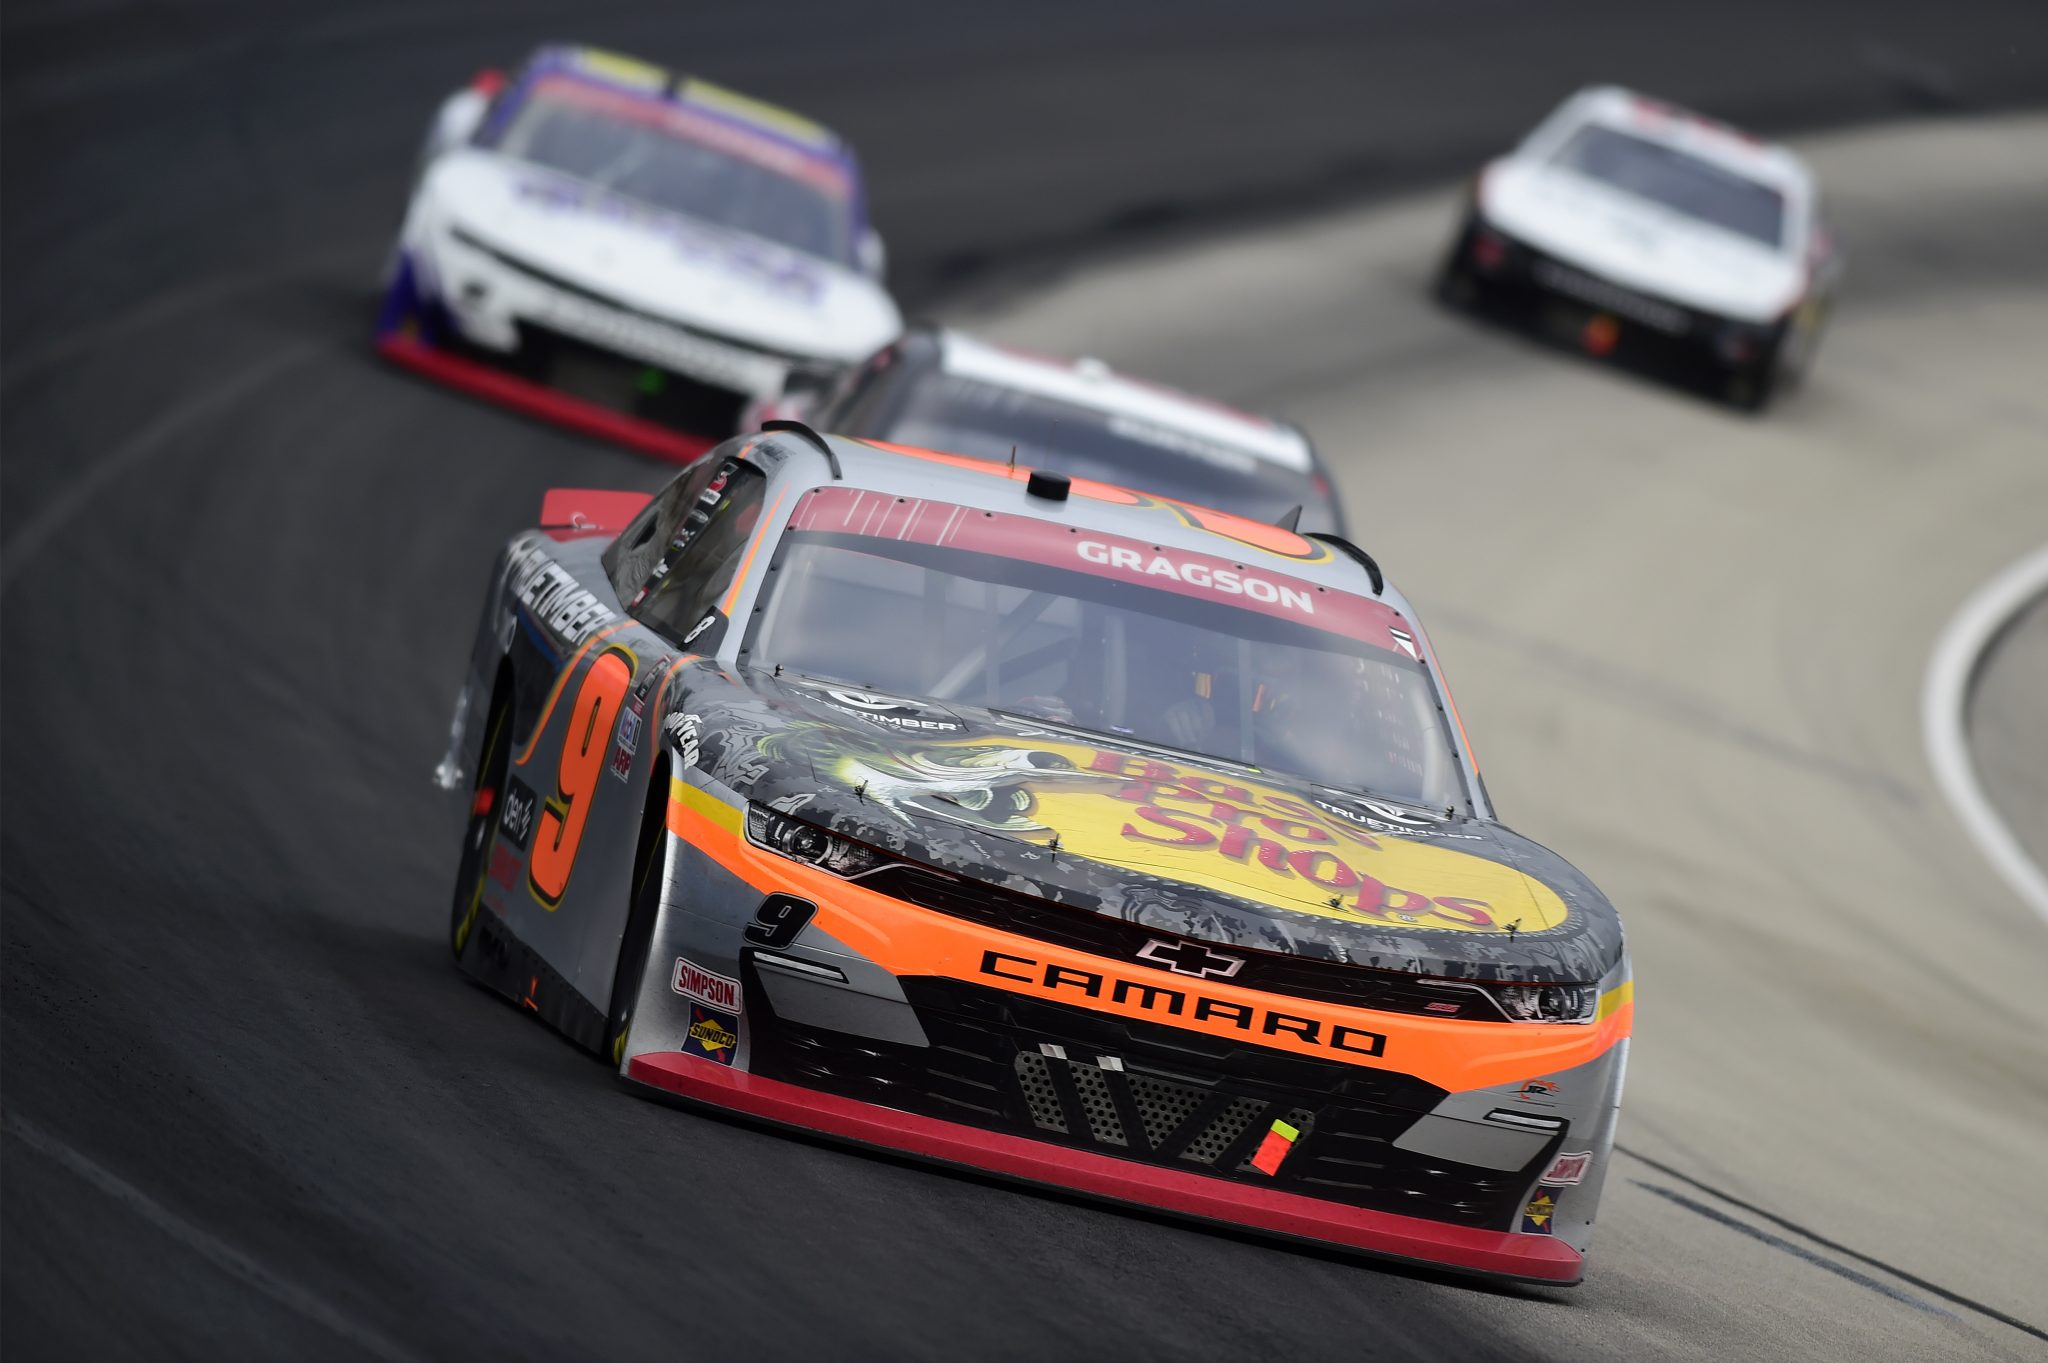 FORT WORTH, TEXAS - OCTOBER 24: Noah Gragson, driver of the #9 Bass Pro Shops/TrueTimber Camo Chevrolet, drives during the NASCAR Xfinity Series O'Reilly Auto Parts 300 at Texas Motor Speedway on October 24, 2020 in Fort Worth, Texas. (Photo by Jared C. Tilton/Getty Images) | Getty Images